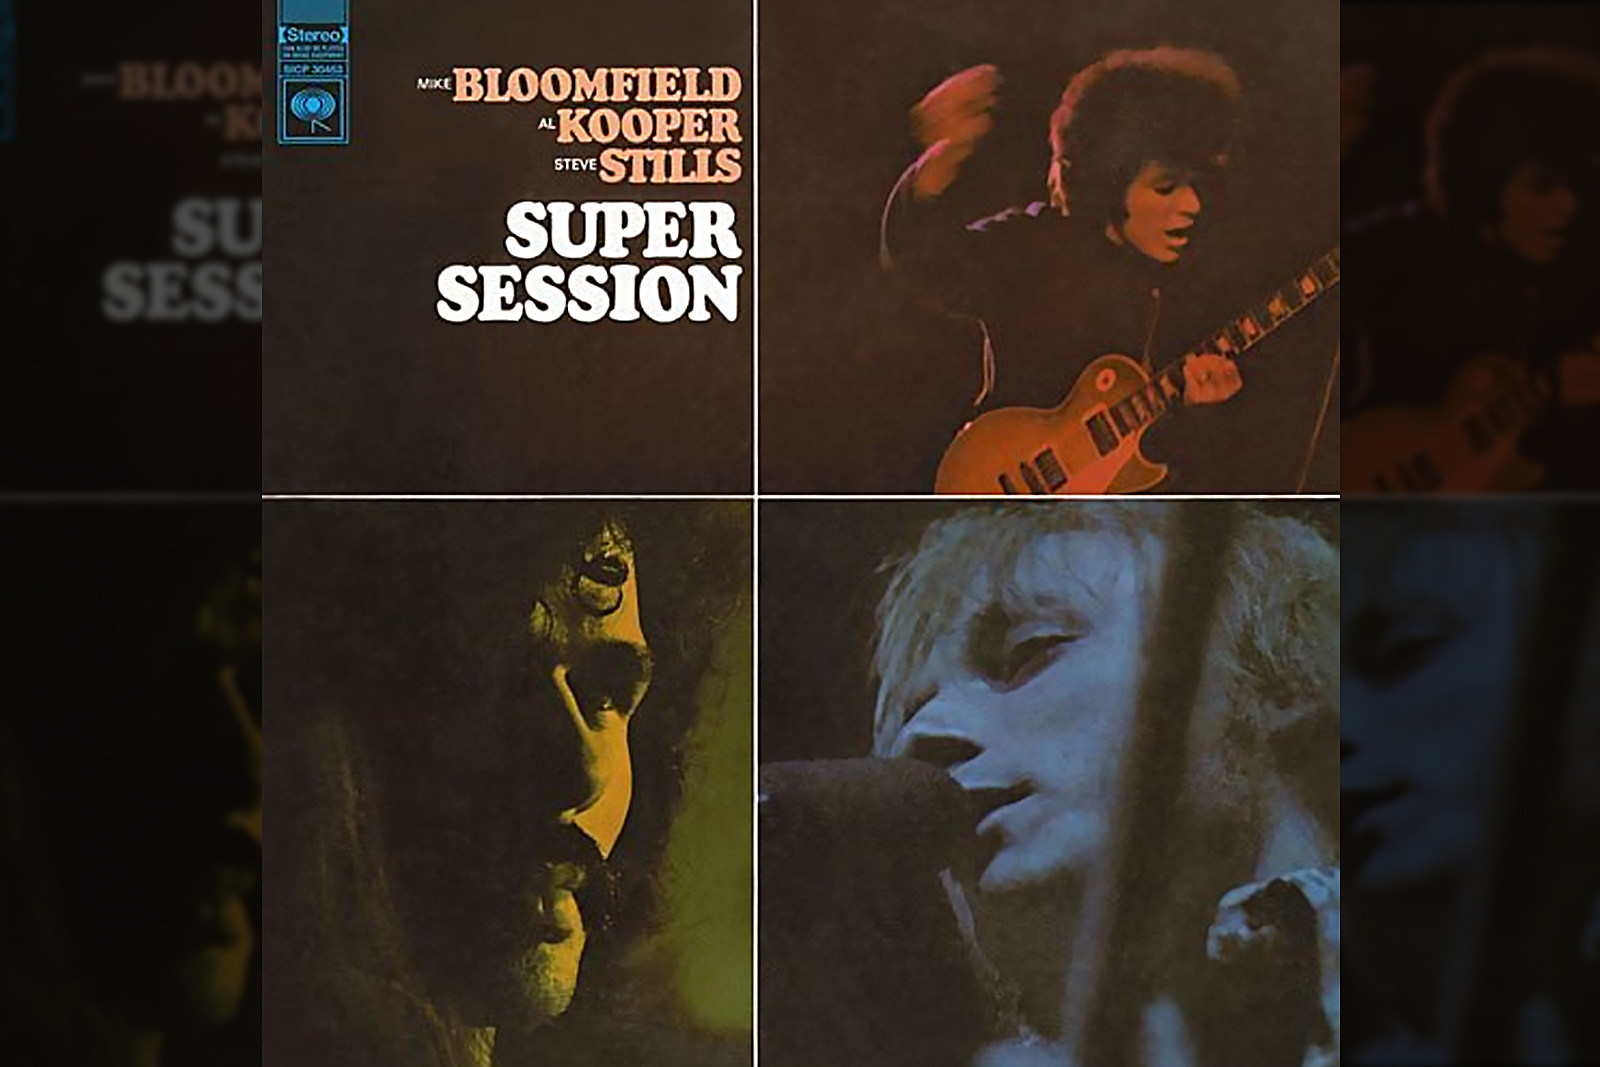 50 Years Ago: Al Kooper Joins Michael Bloomfield and Stephen Stills for 'Super Session'